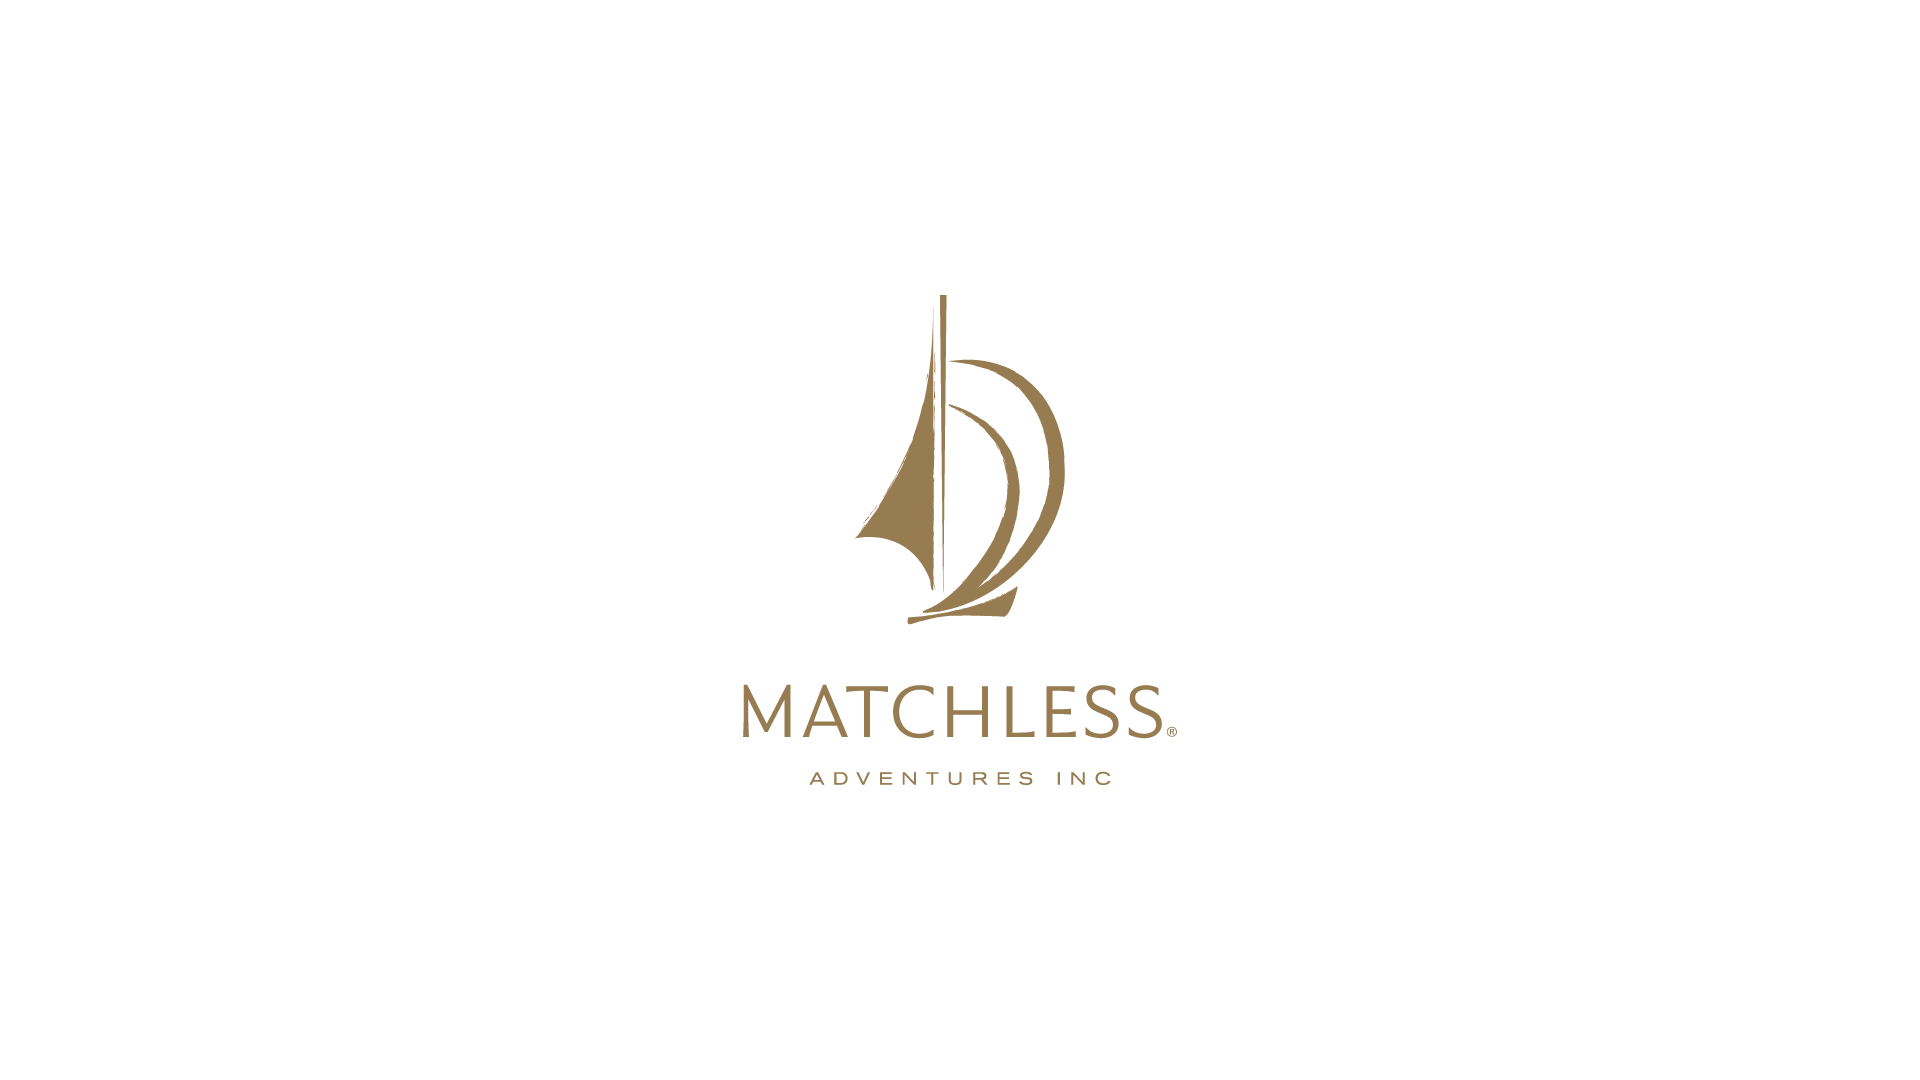 Matchless Adventures Inc.  logo